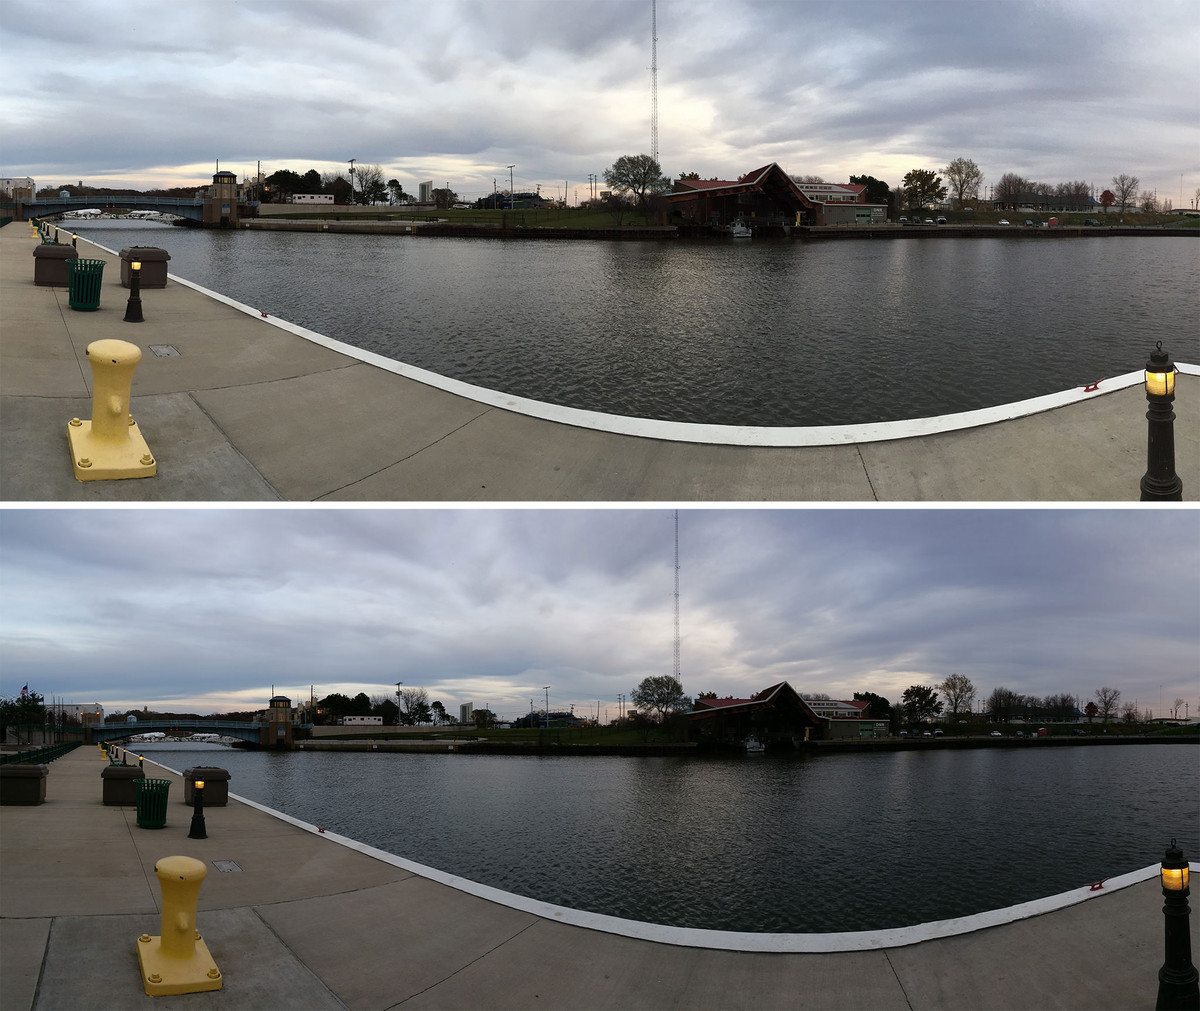 iPhone 6 Plus vs Galaxy Note 4 camera comparison